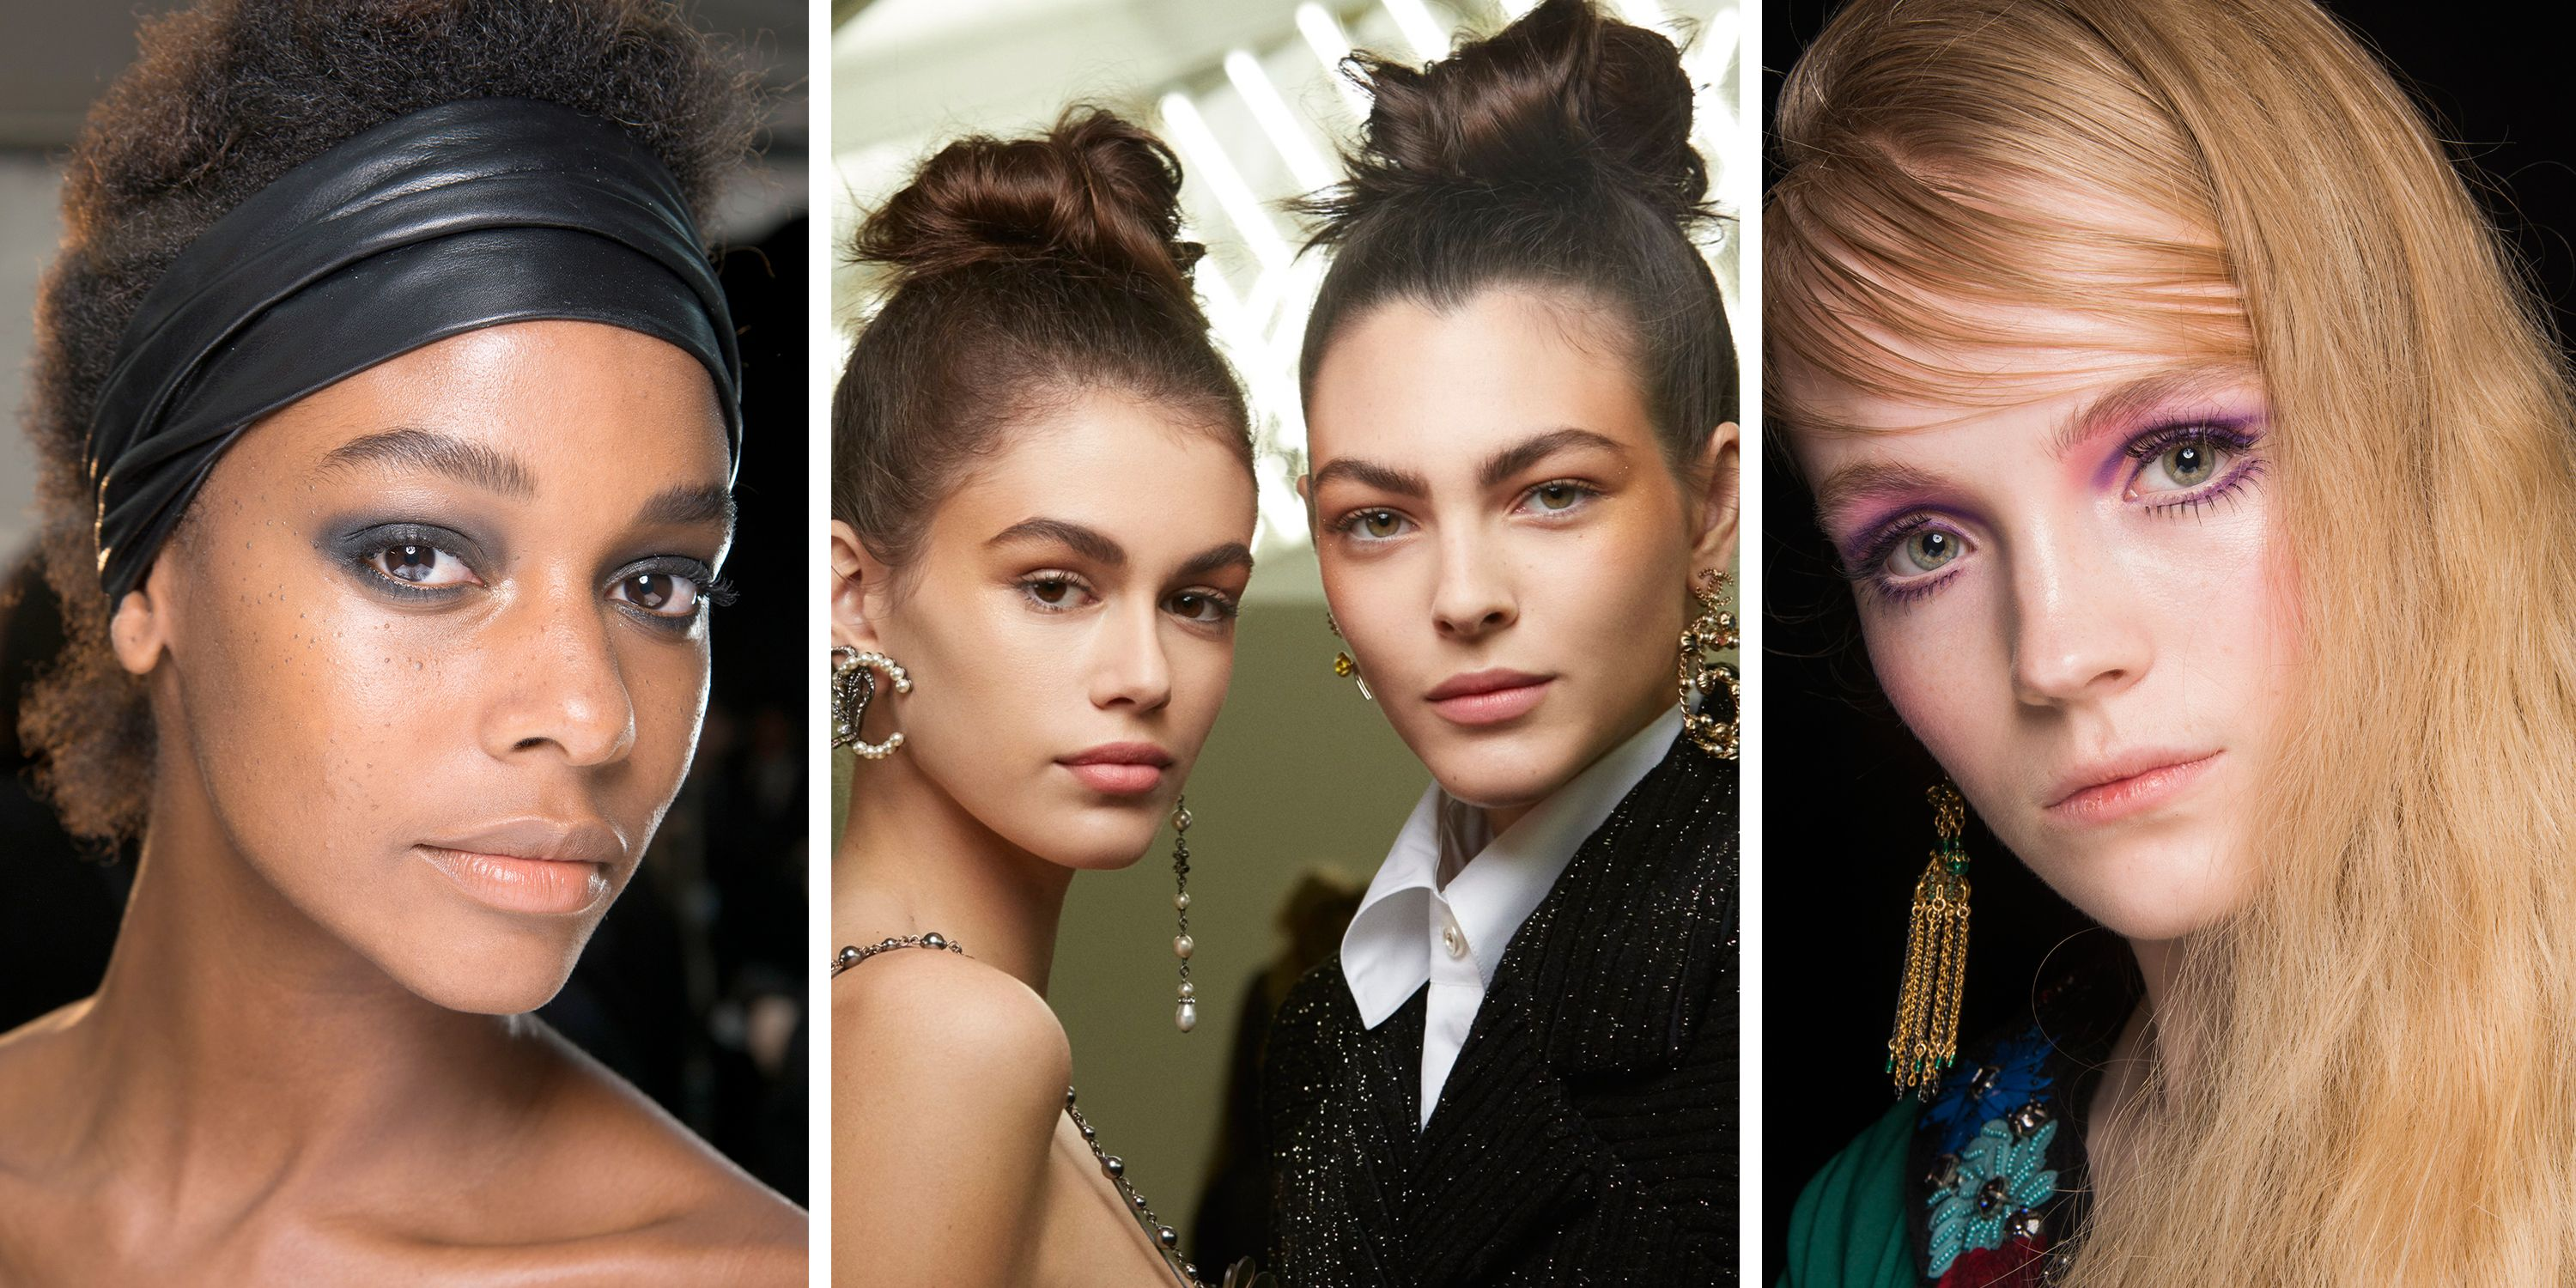 Autumn Winter 2018 Hair And Makeup Trends 79 Best Beauty Looks Jill Lip Matte 12 Coral Cookies